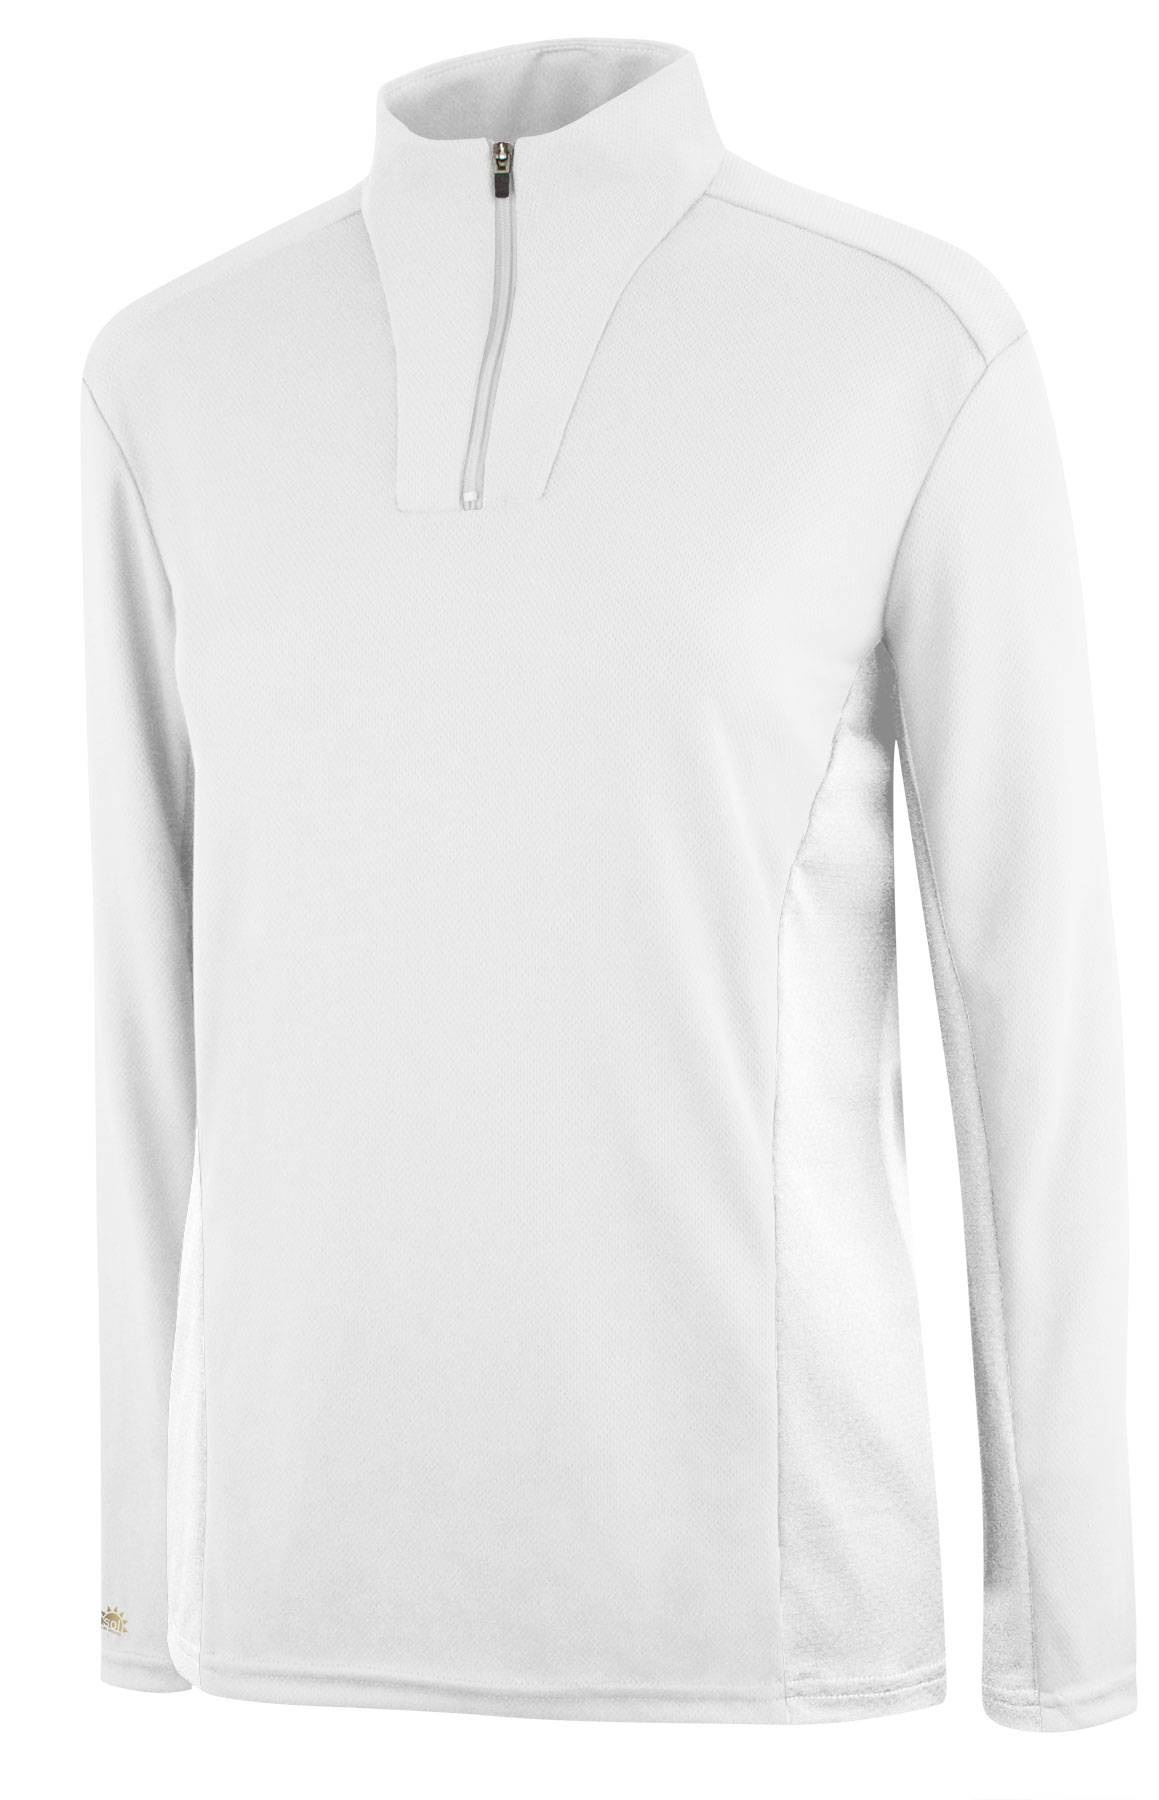 Irideon Radiance Parasol Long Sleeve Jersey - Ladies